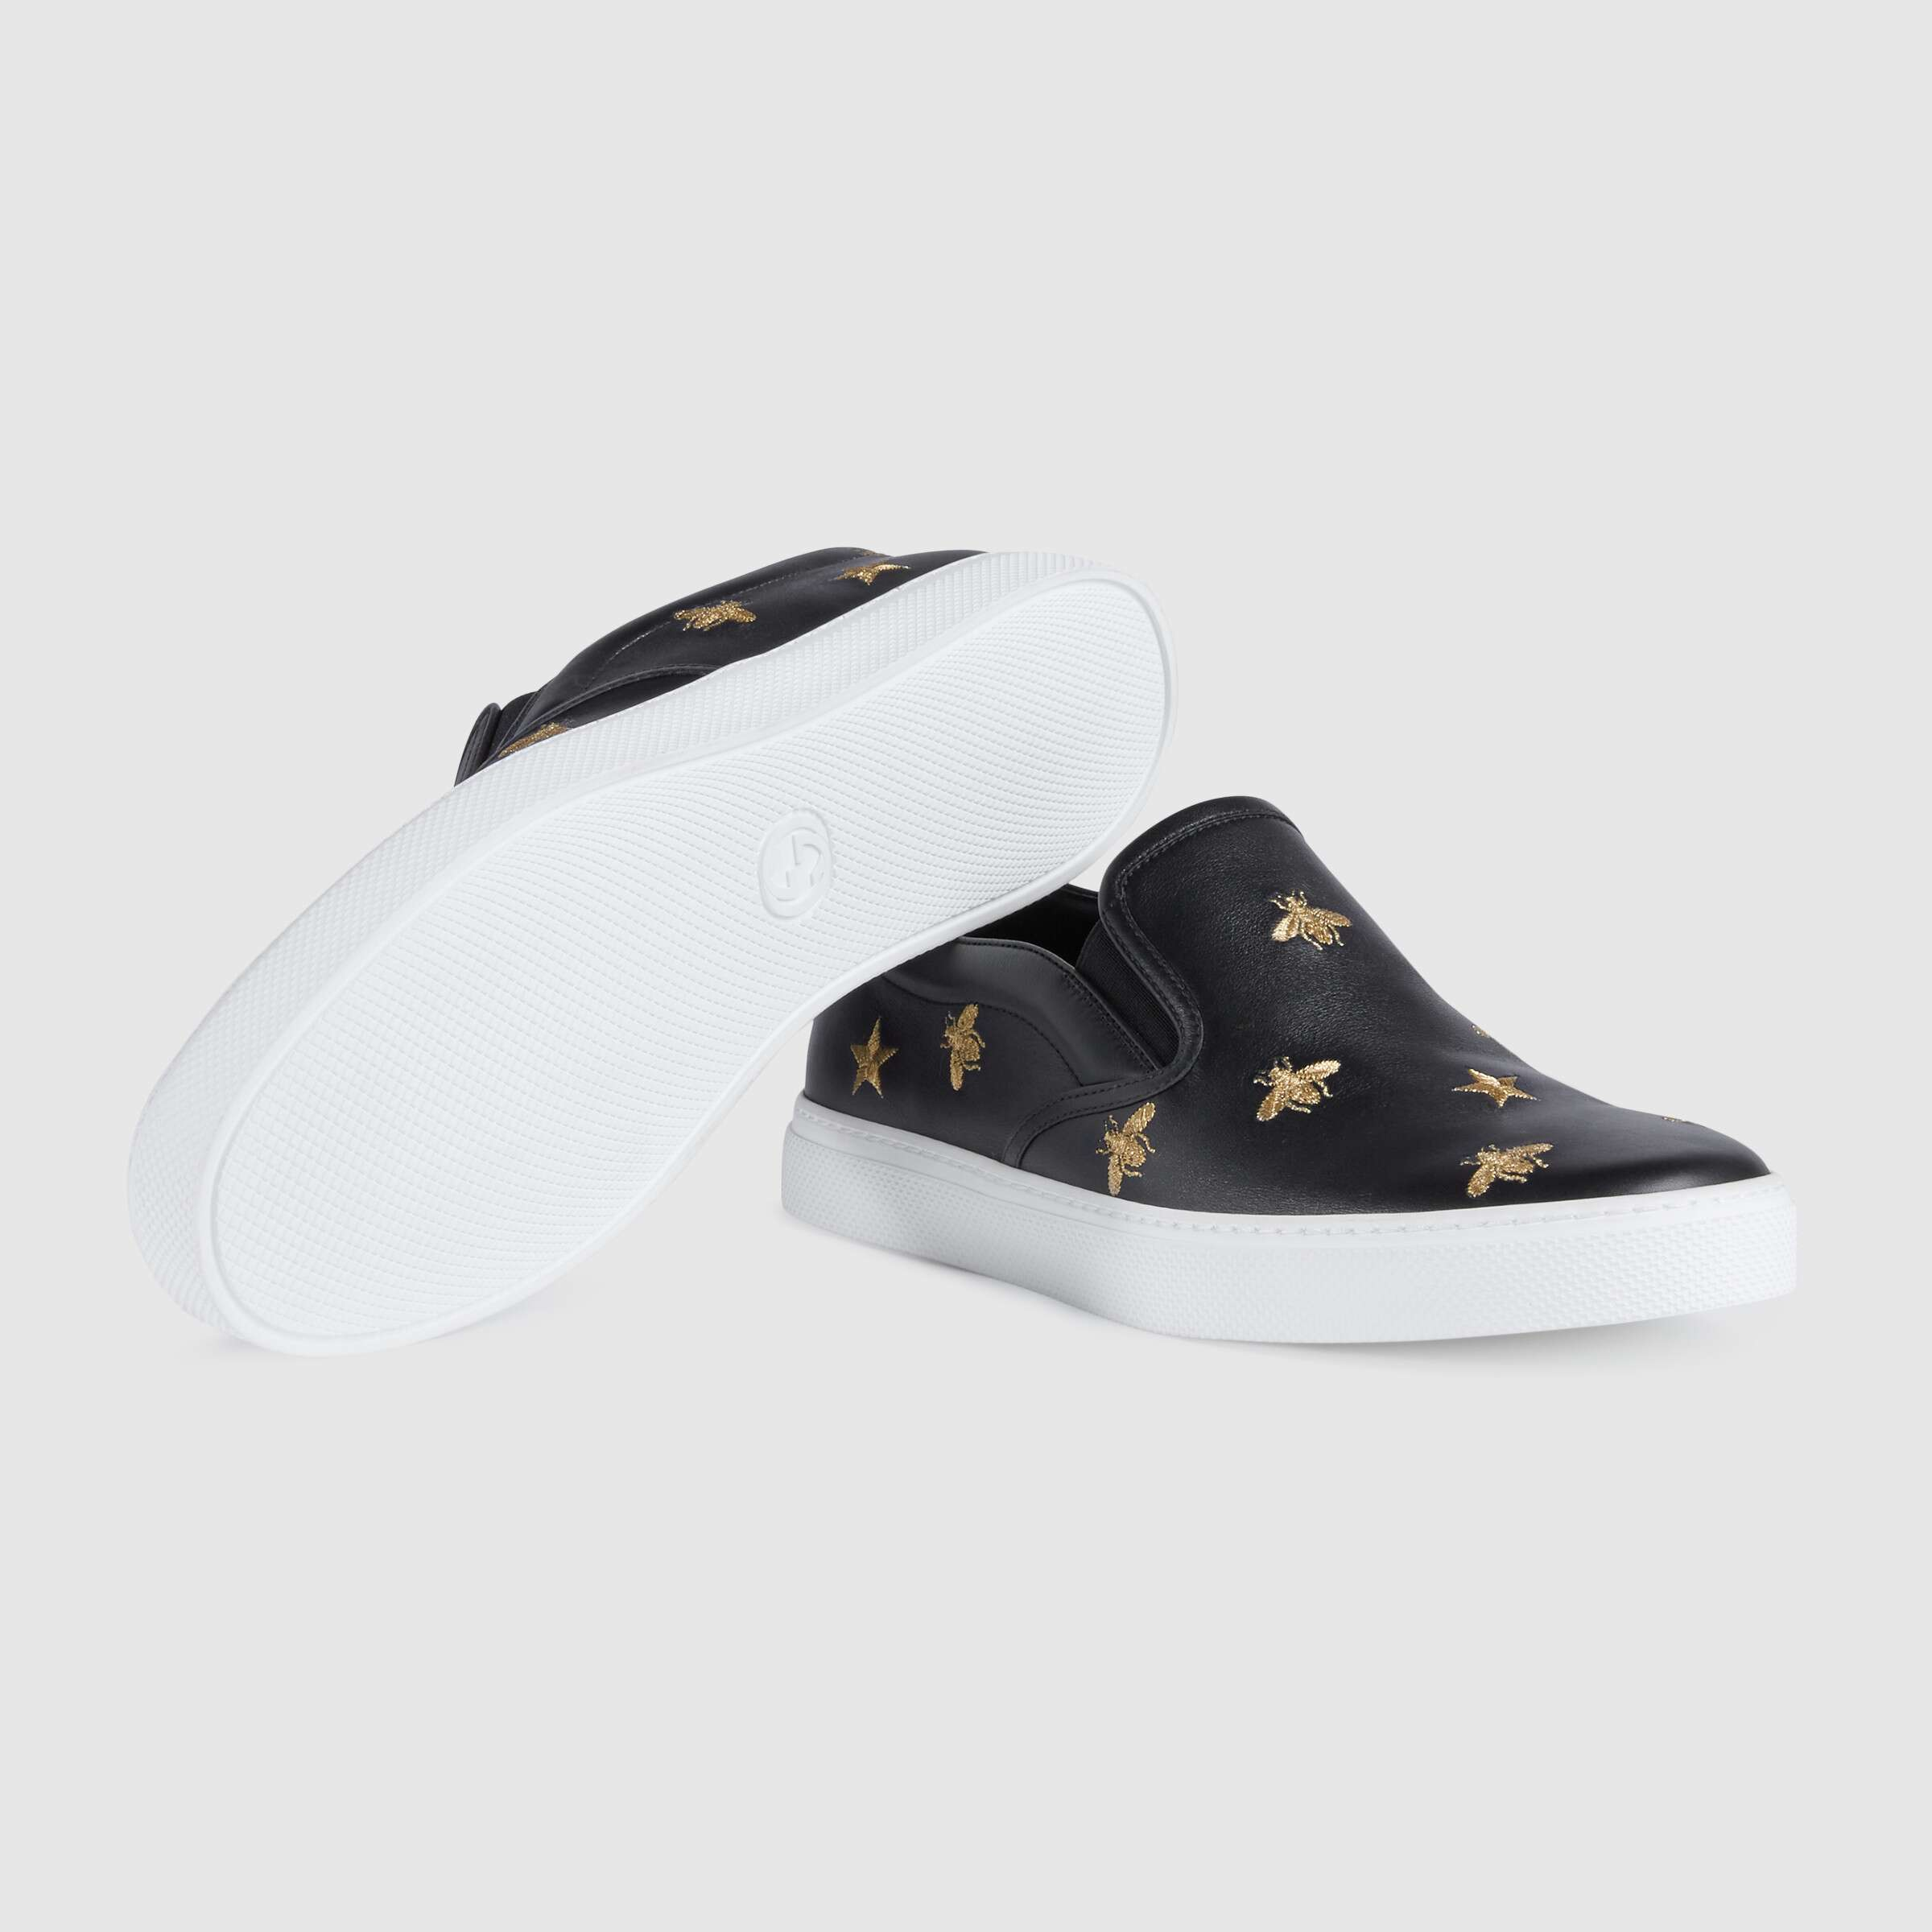 유럽직배송 구찌 GUCCI Men's slip-on sneaker with bees 407364AXWB01076